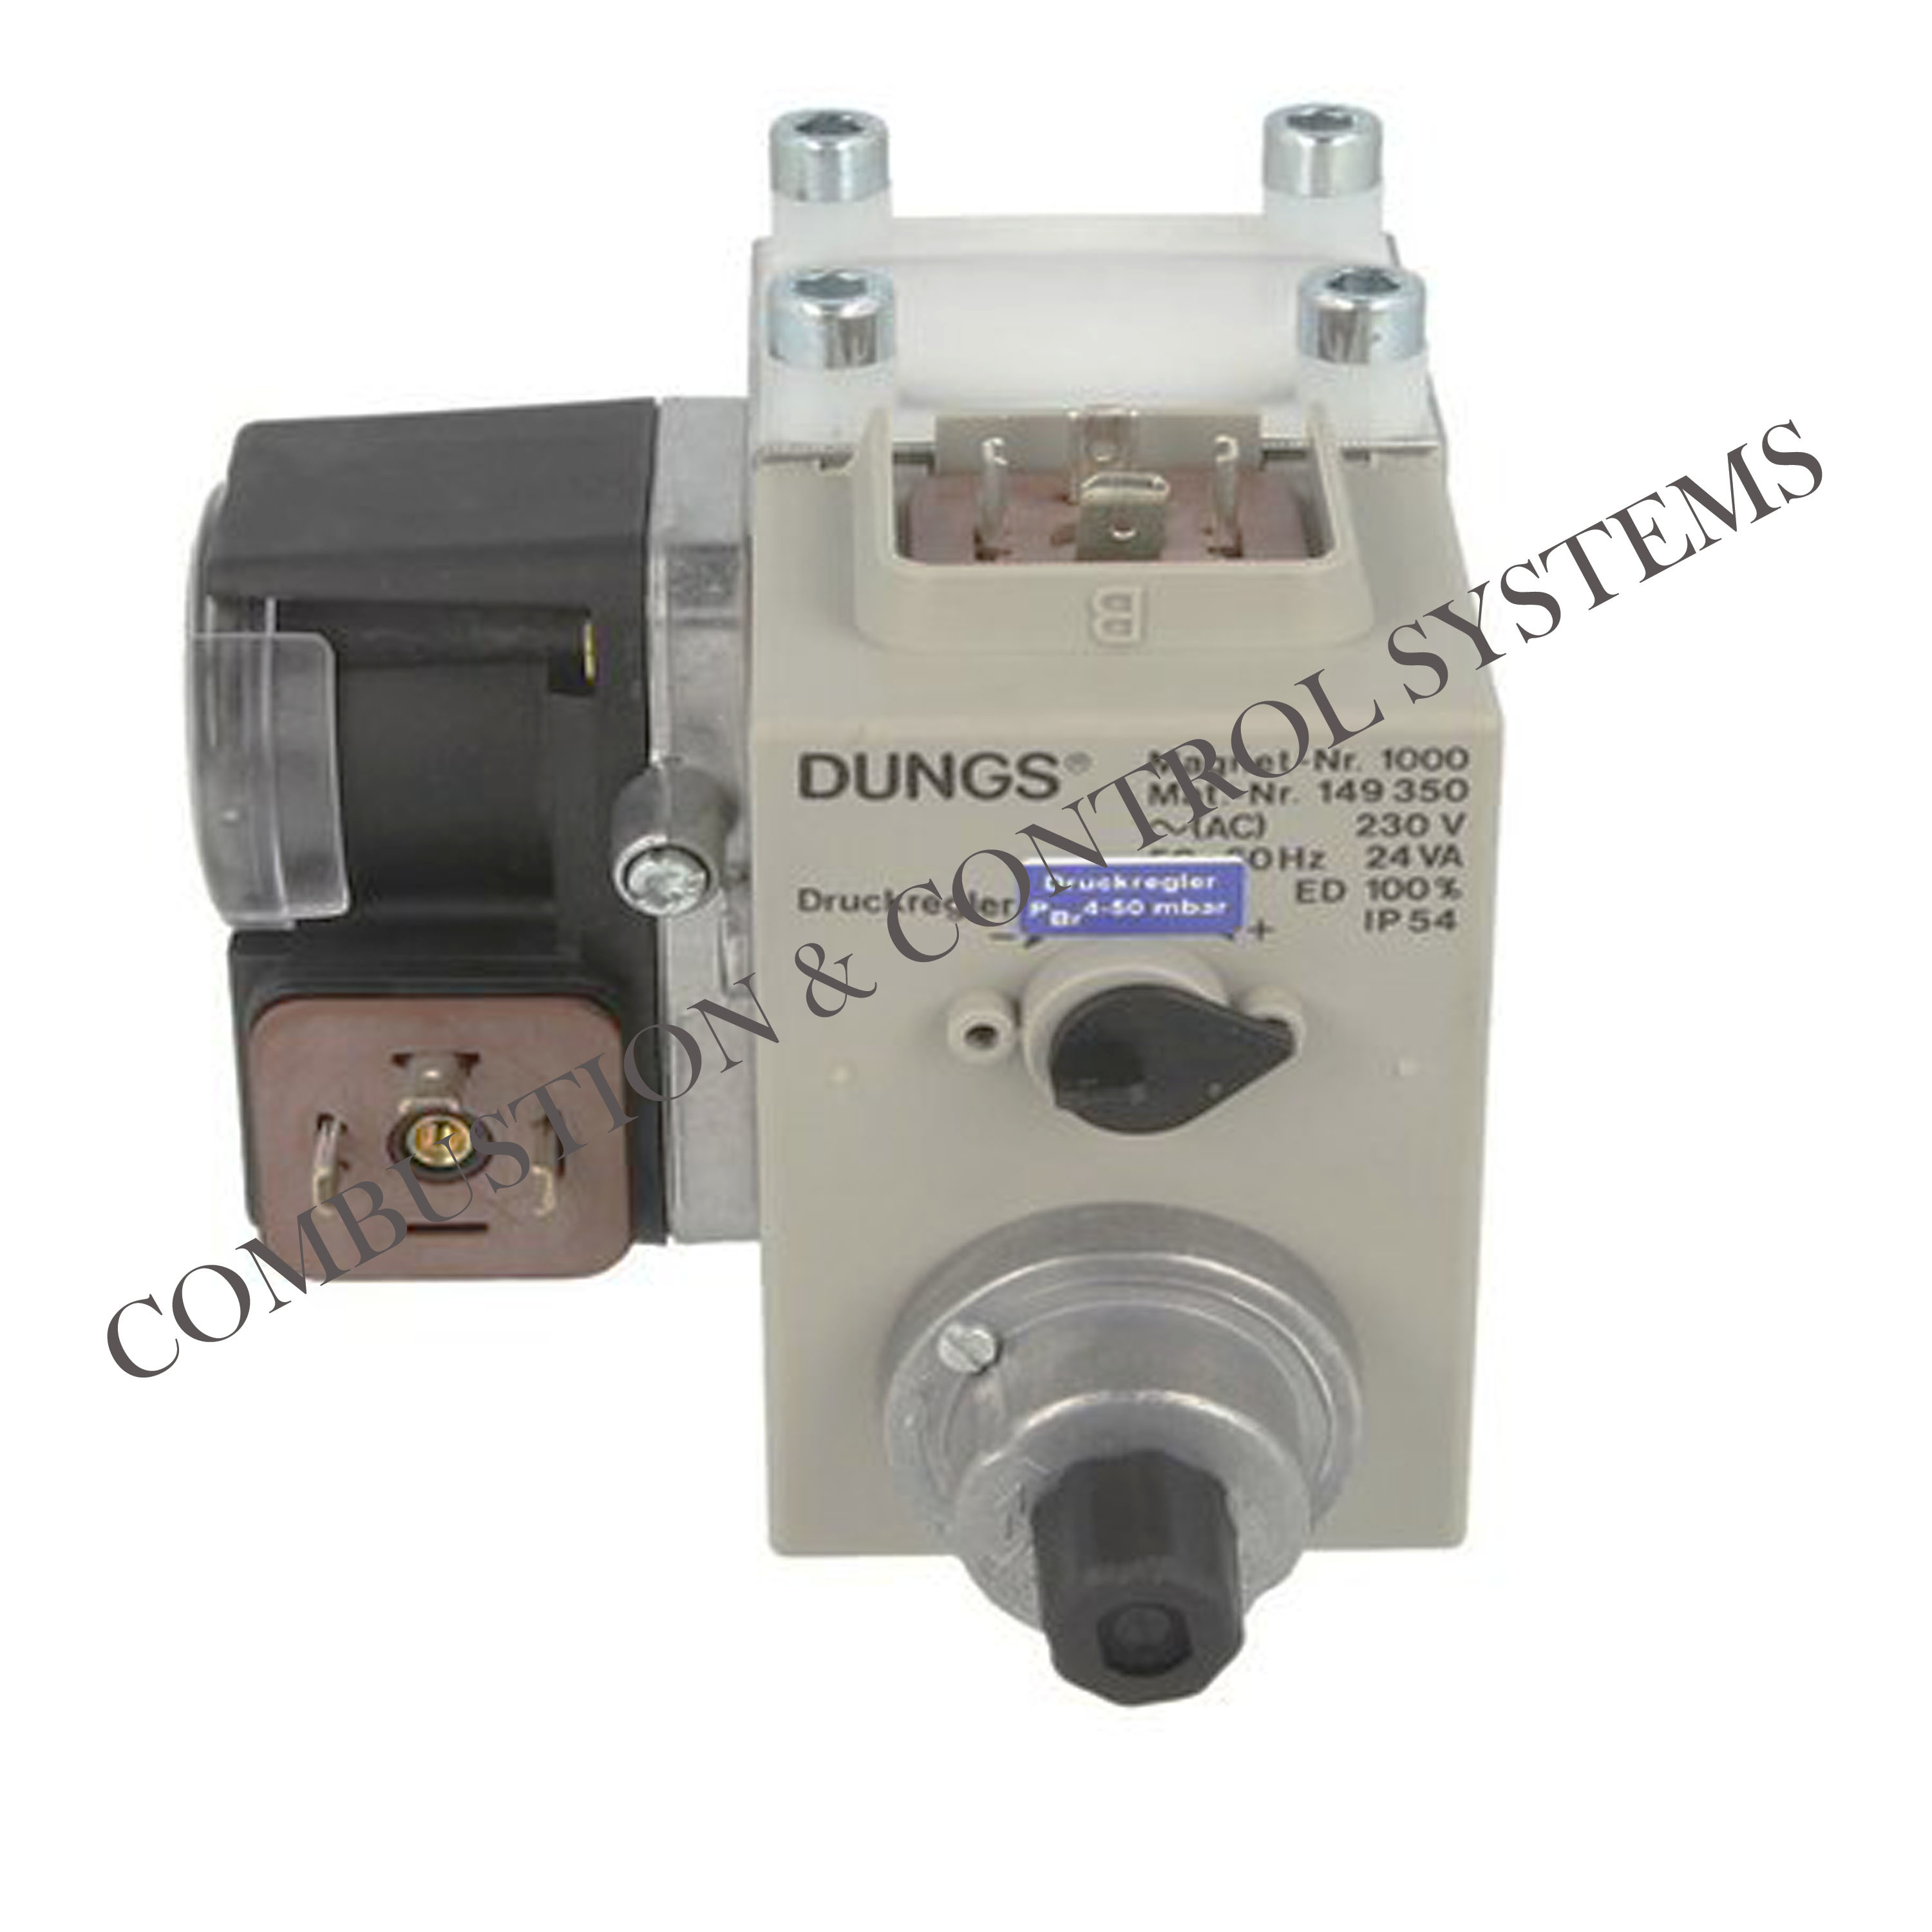 Dungs MB DLE 403 B01 S50 Gas Multibloc